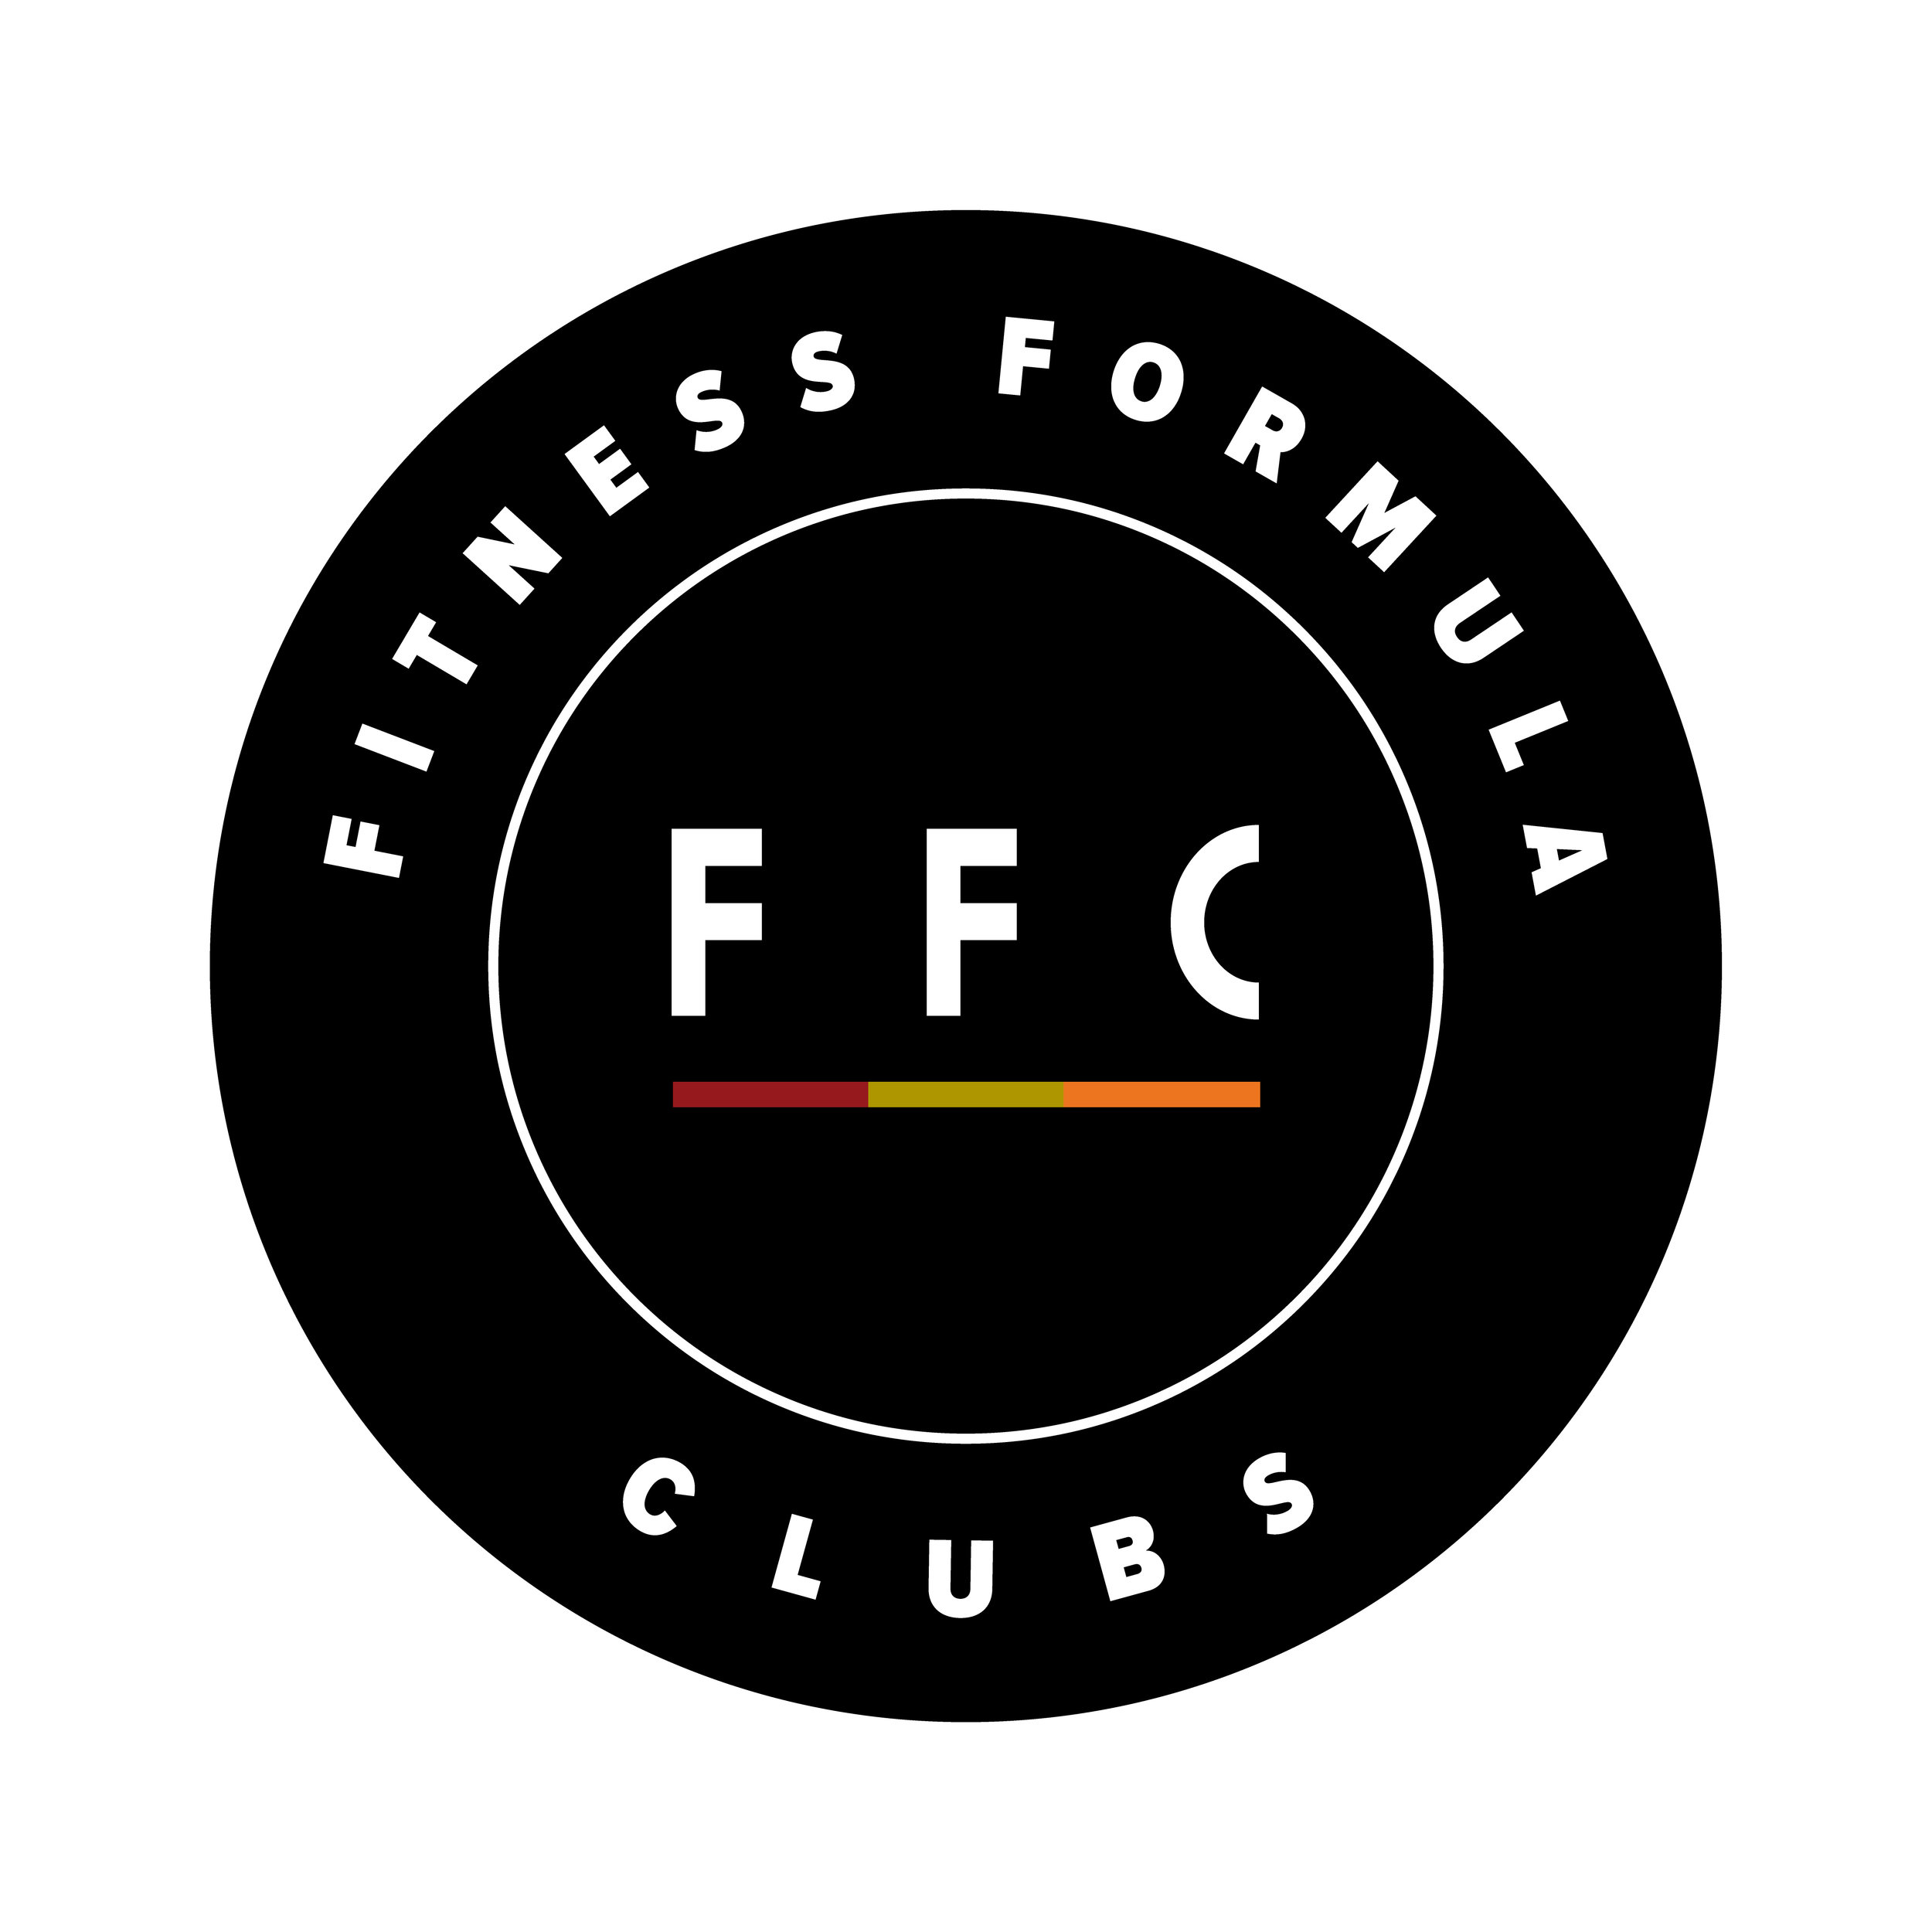 FFC_new logo.png